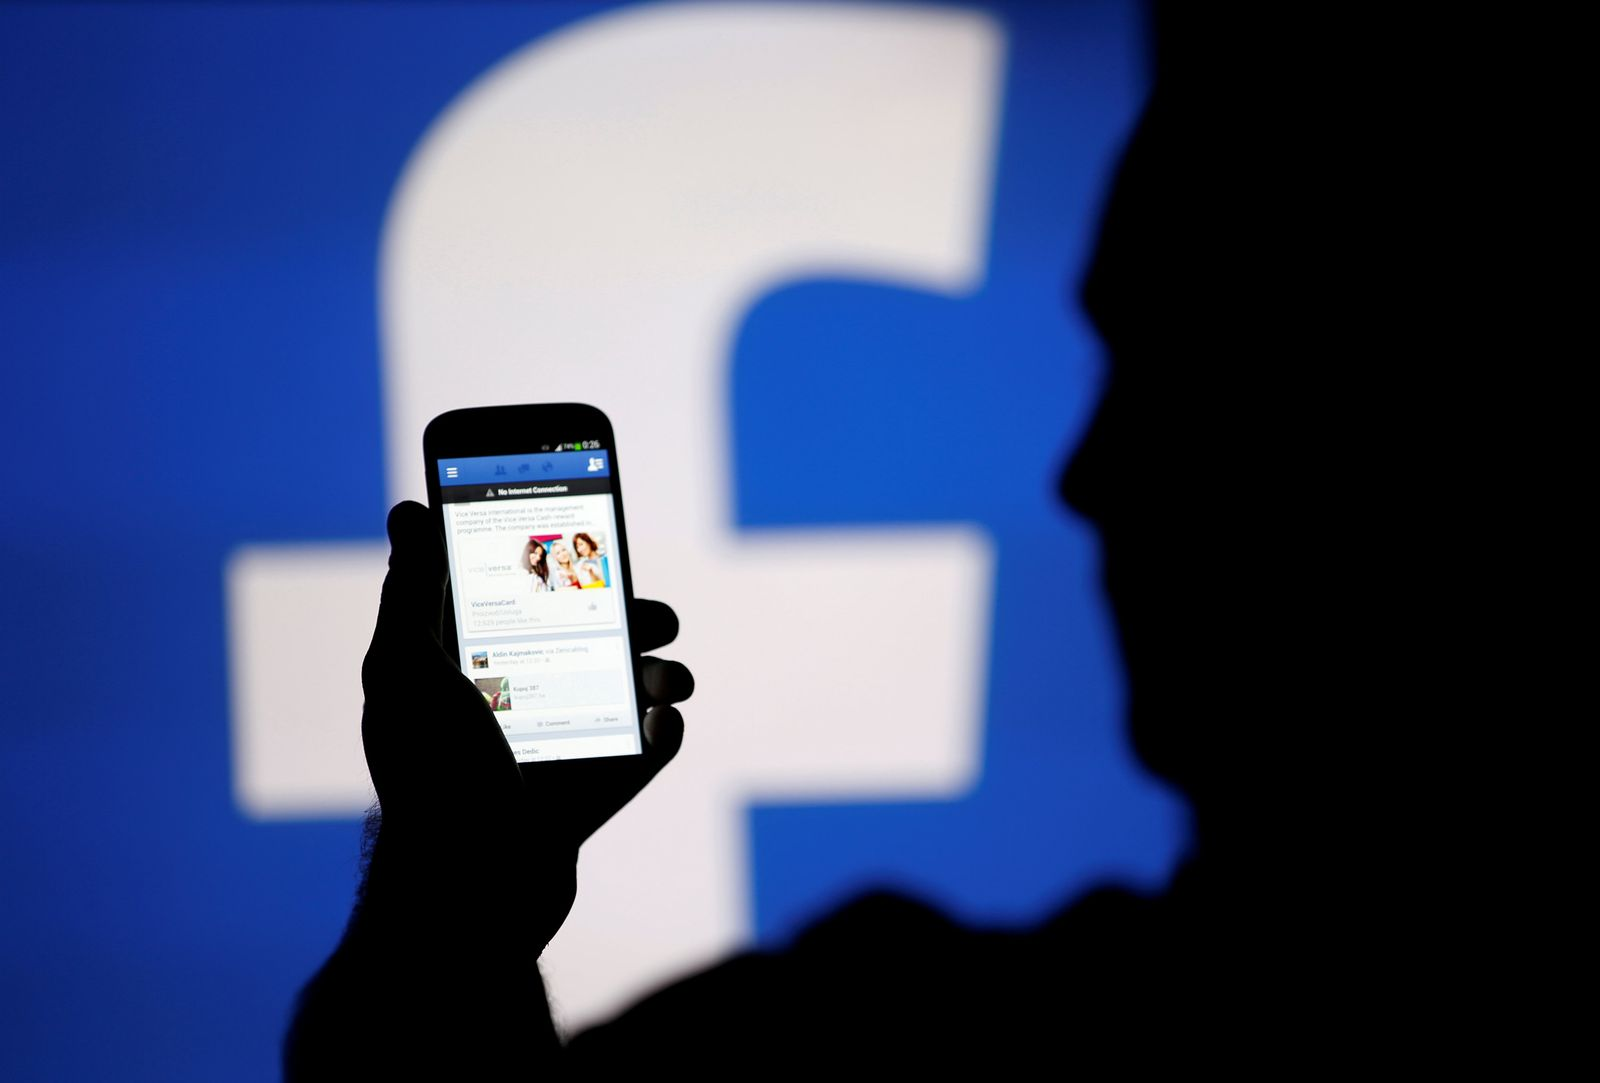 FILE PHOTO: A man is silhouetted against a video screen with an Facebook logo as he poses with an Samsung S4 smartphone in this photo illustration taken in the central Bosnian town of Zenica